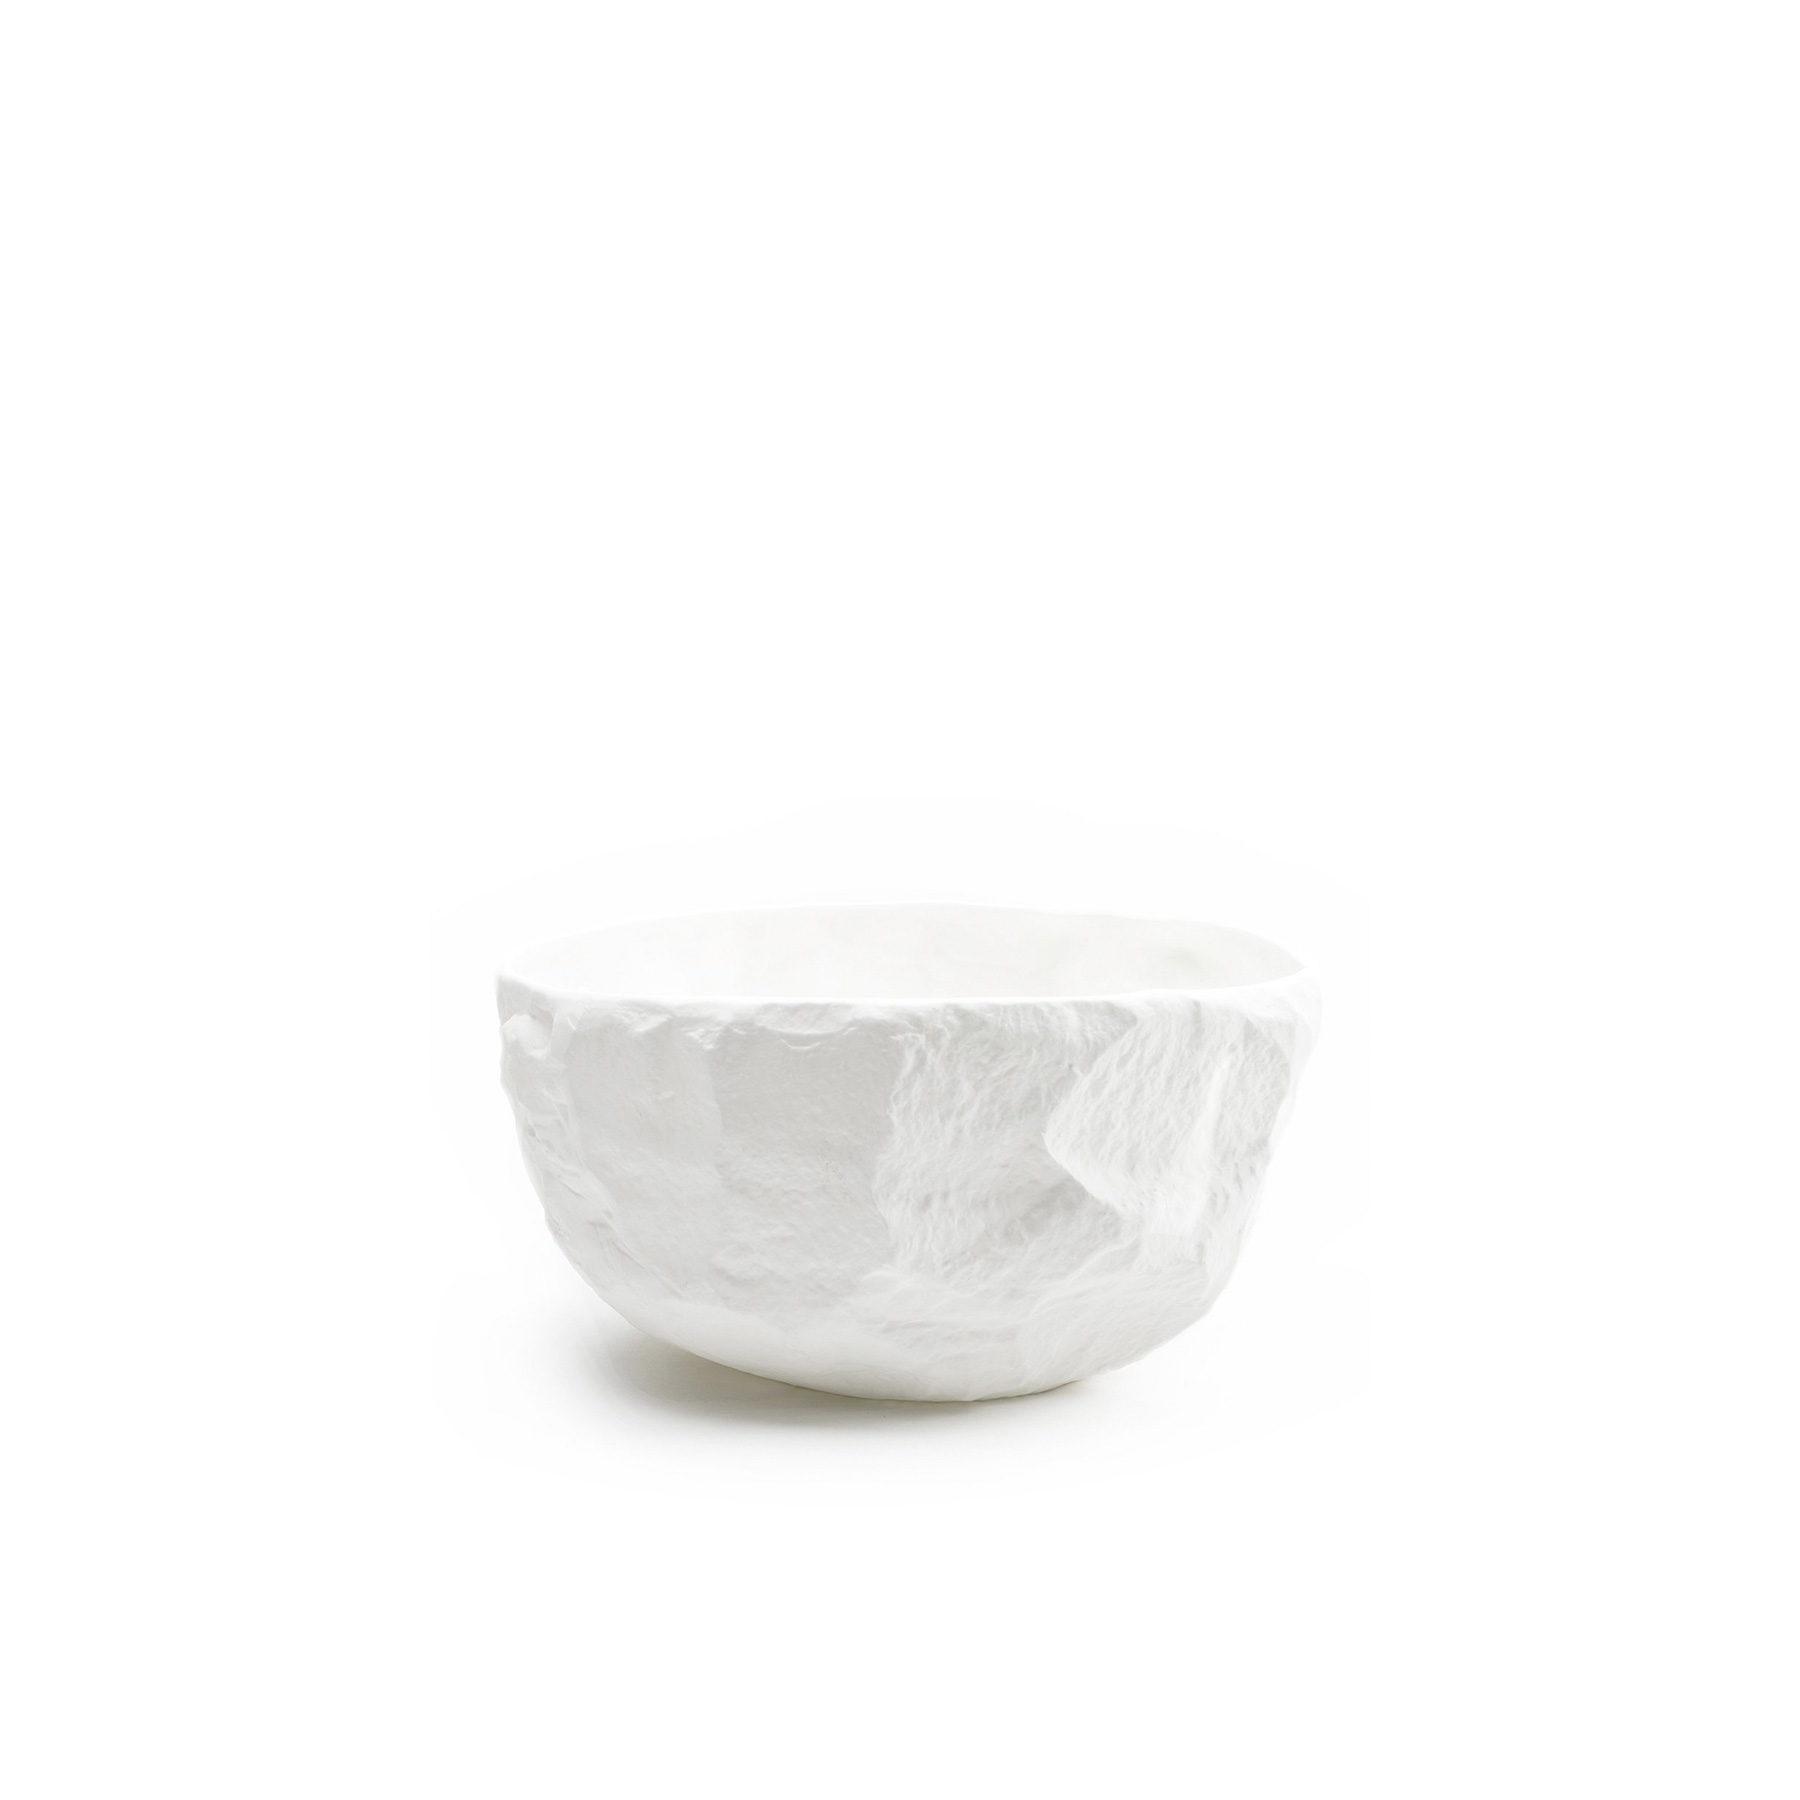 Crockery White Large Deep Bowl - A collection of fine bone china tableware slip-cast from plaster models carved by hand, with glazed interior for functionality and raw exterior reflecting the modest surface texture of the plaster original. The process of slip-casting begins with the creation of a three-dimensional model of the design known as a master by a professional model-maker, from which the production mould is cast. Crockery bypasses this process by placing the responsibility of both designer and model-maker in the hands of Max Lamb. Using the tools of a stone mason Max chips and carves a solid block of plaster to make a series of tableware, the design of each formed quite simply out of their own making.  | Matter of Stuff